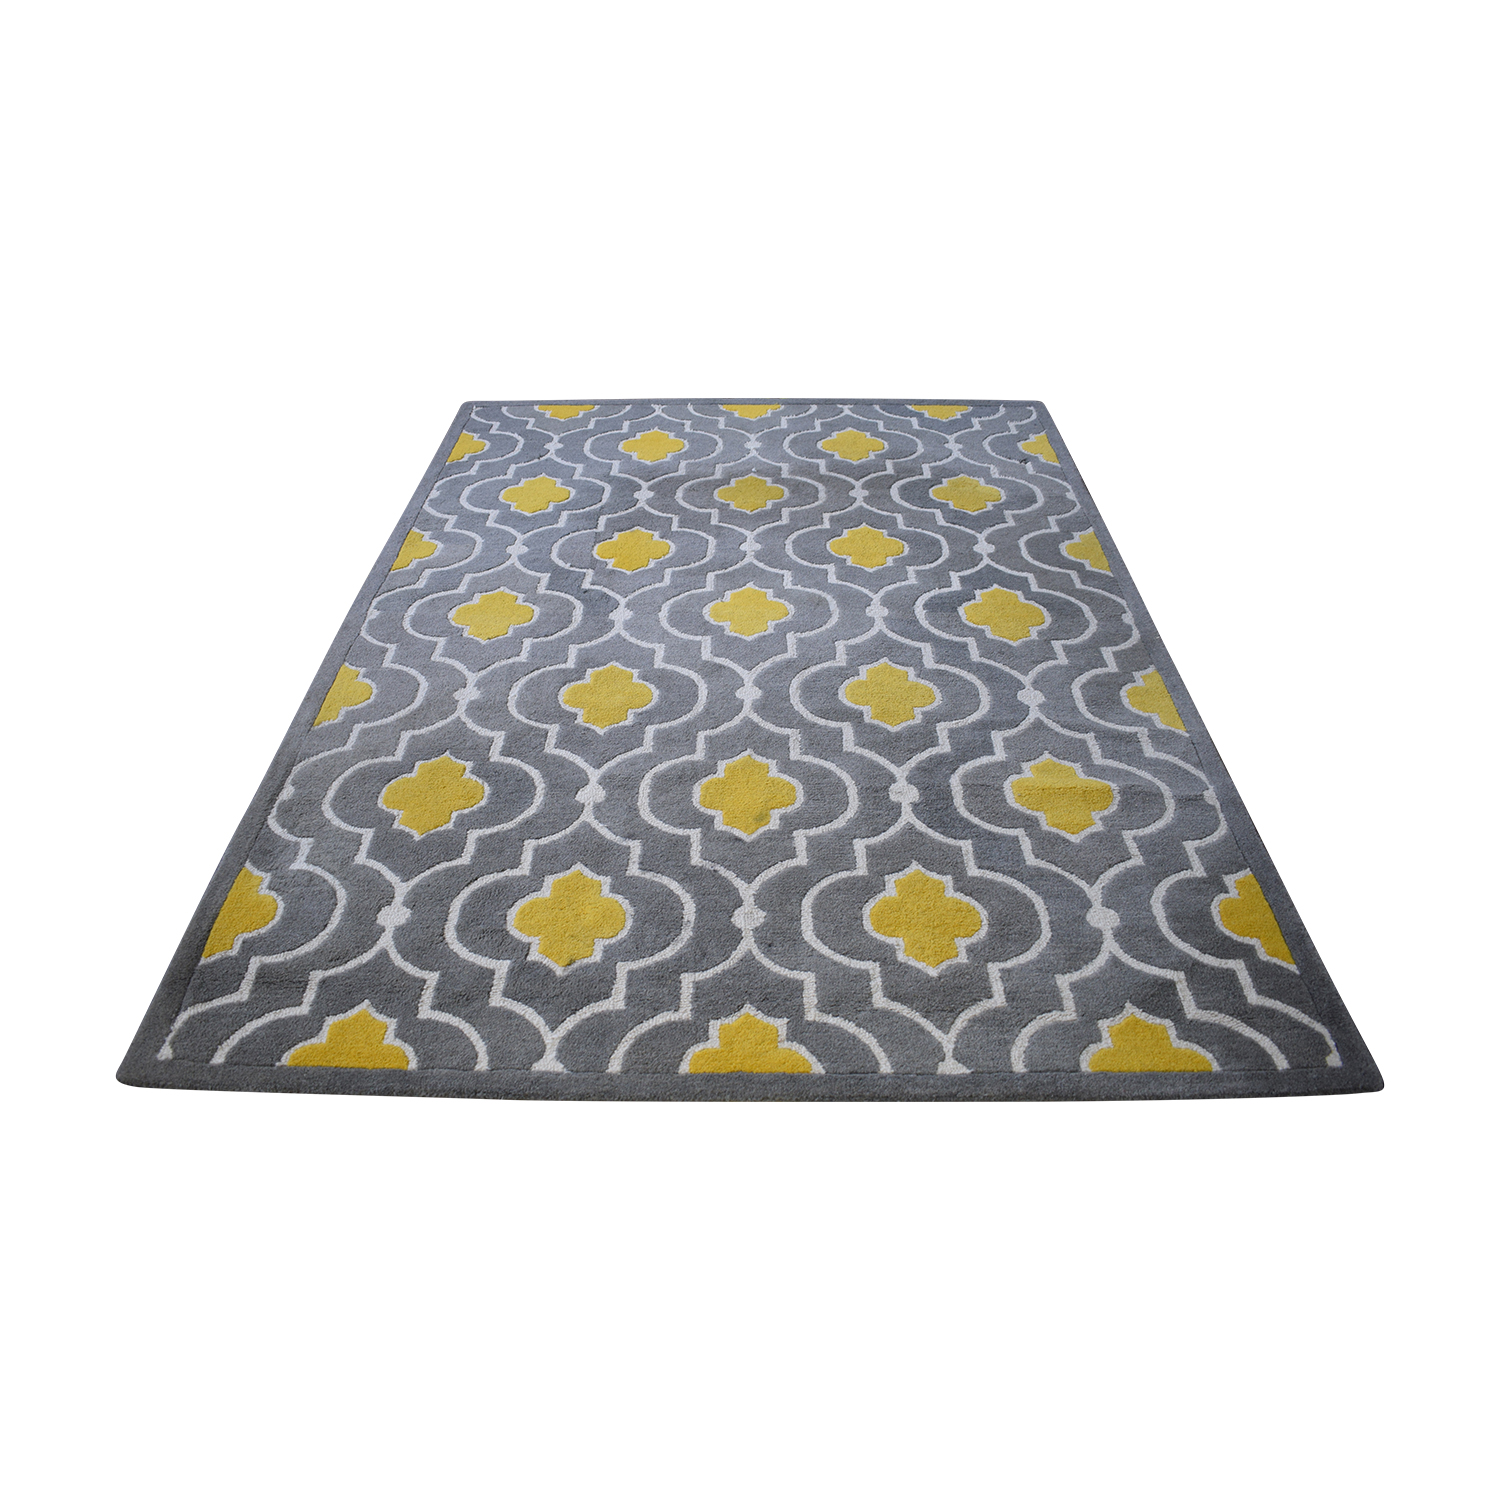 Loloi Loloi Brighton Grey and Yellow Rug for sale